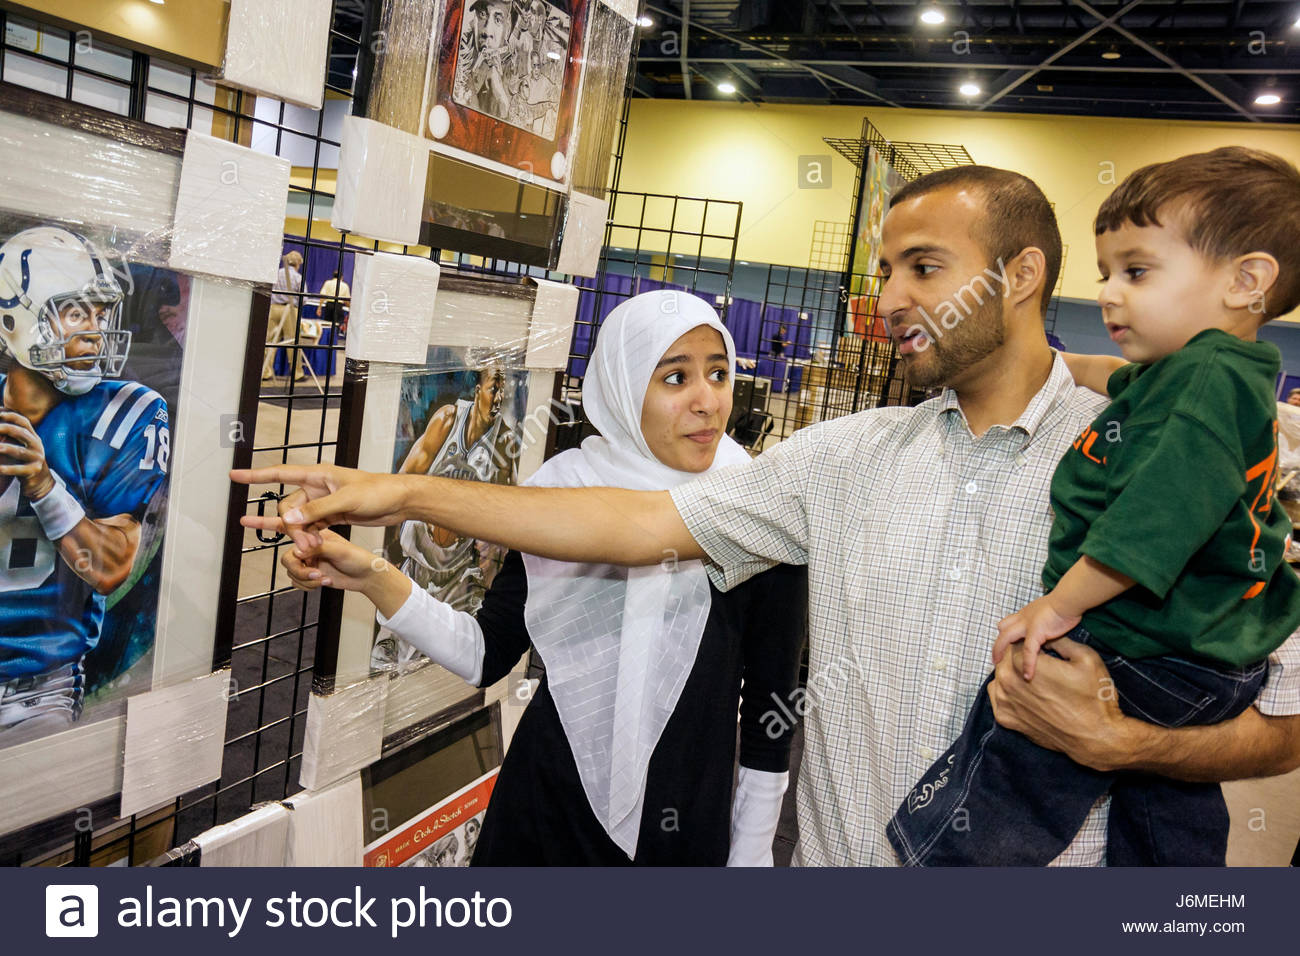 Miami Beach Miami Florida Beach Convention Center sports memorabilia collectibles for sale Mid Eastern family Muslim Stock Photo